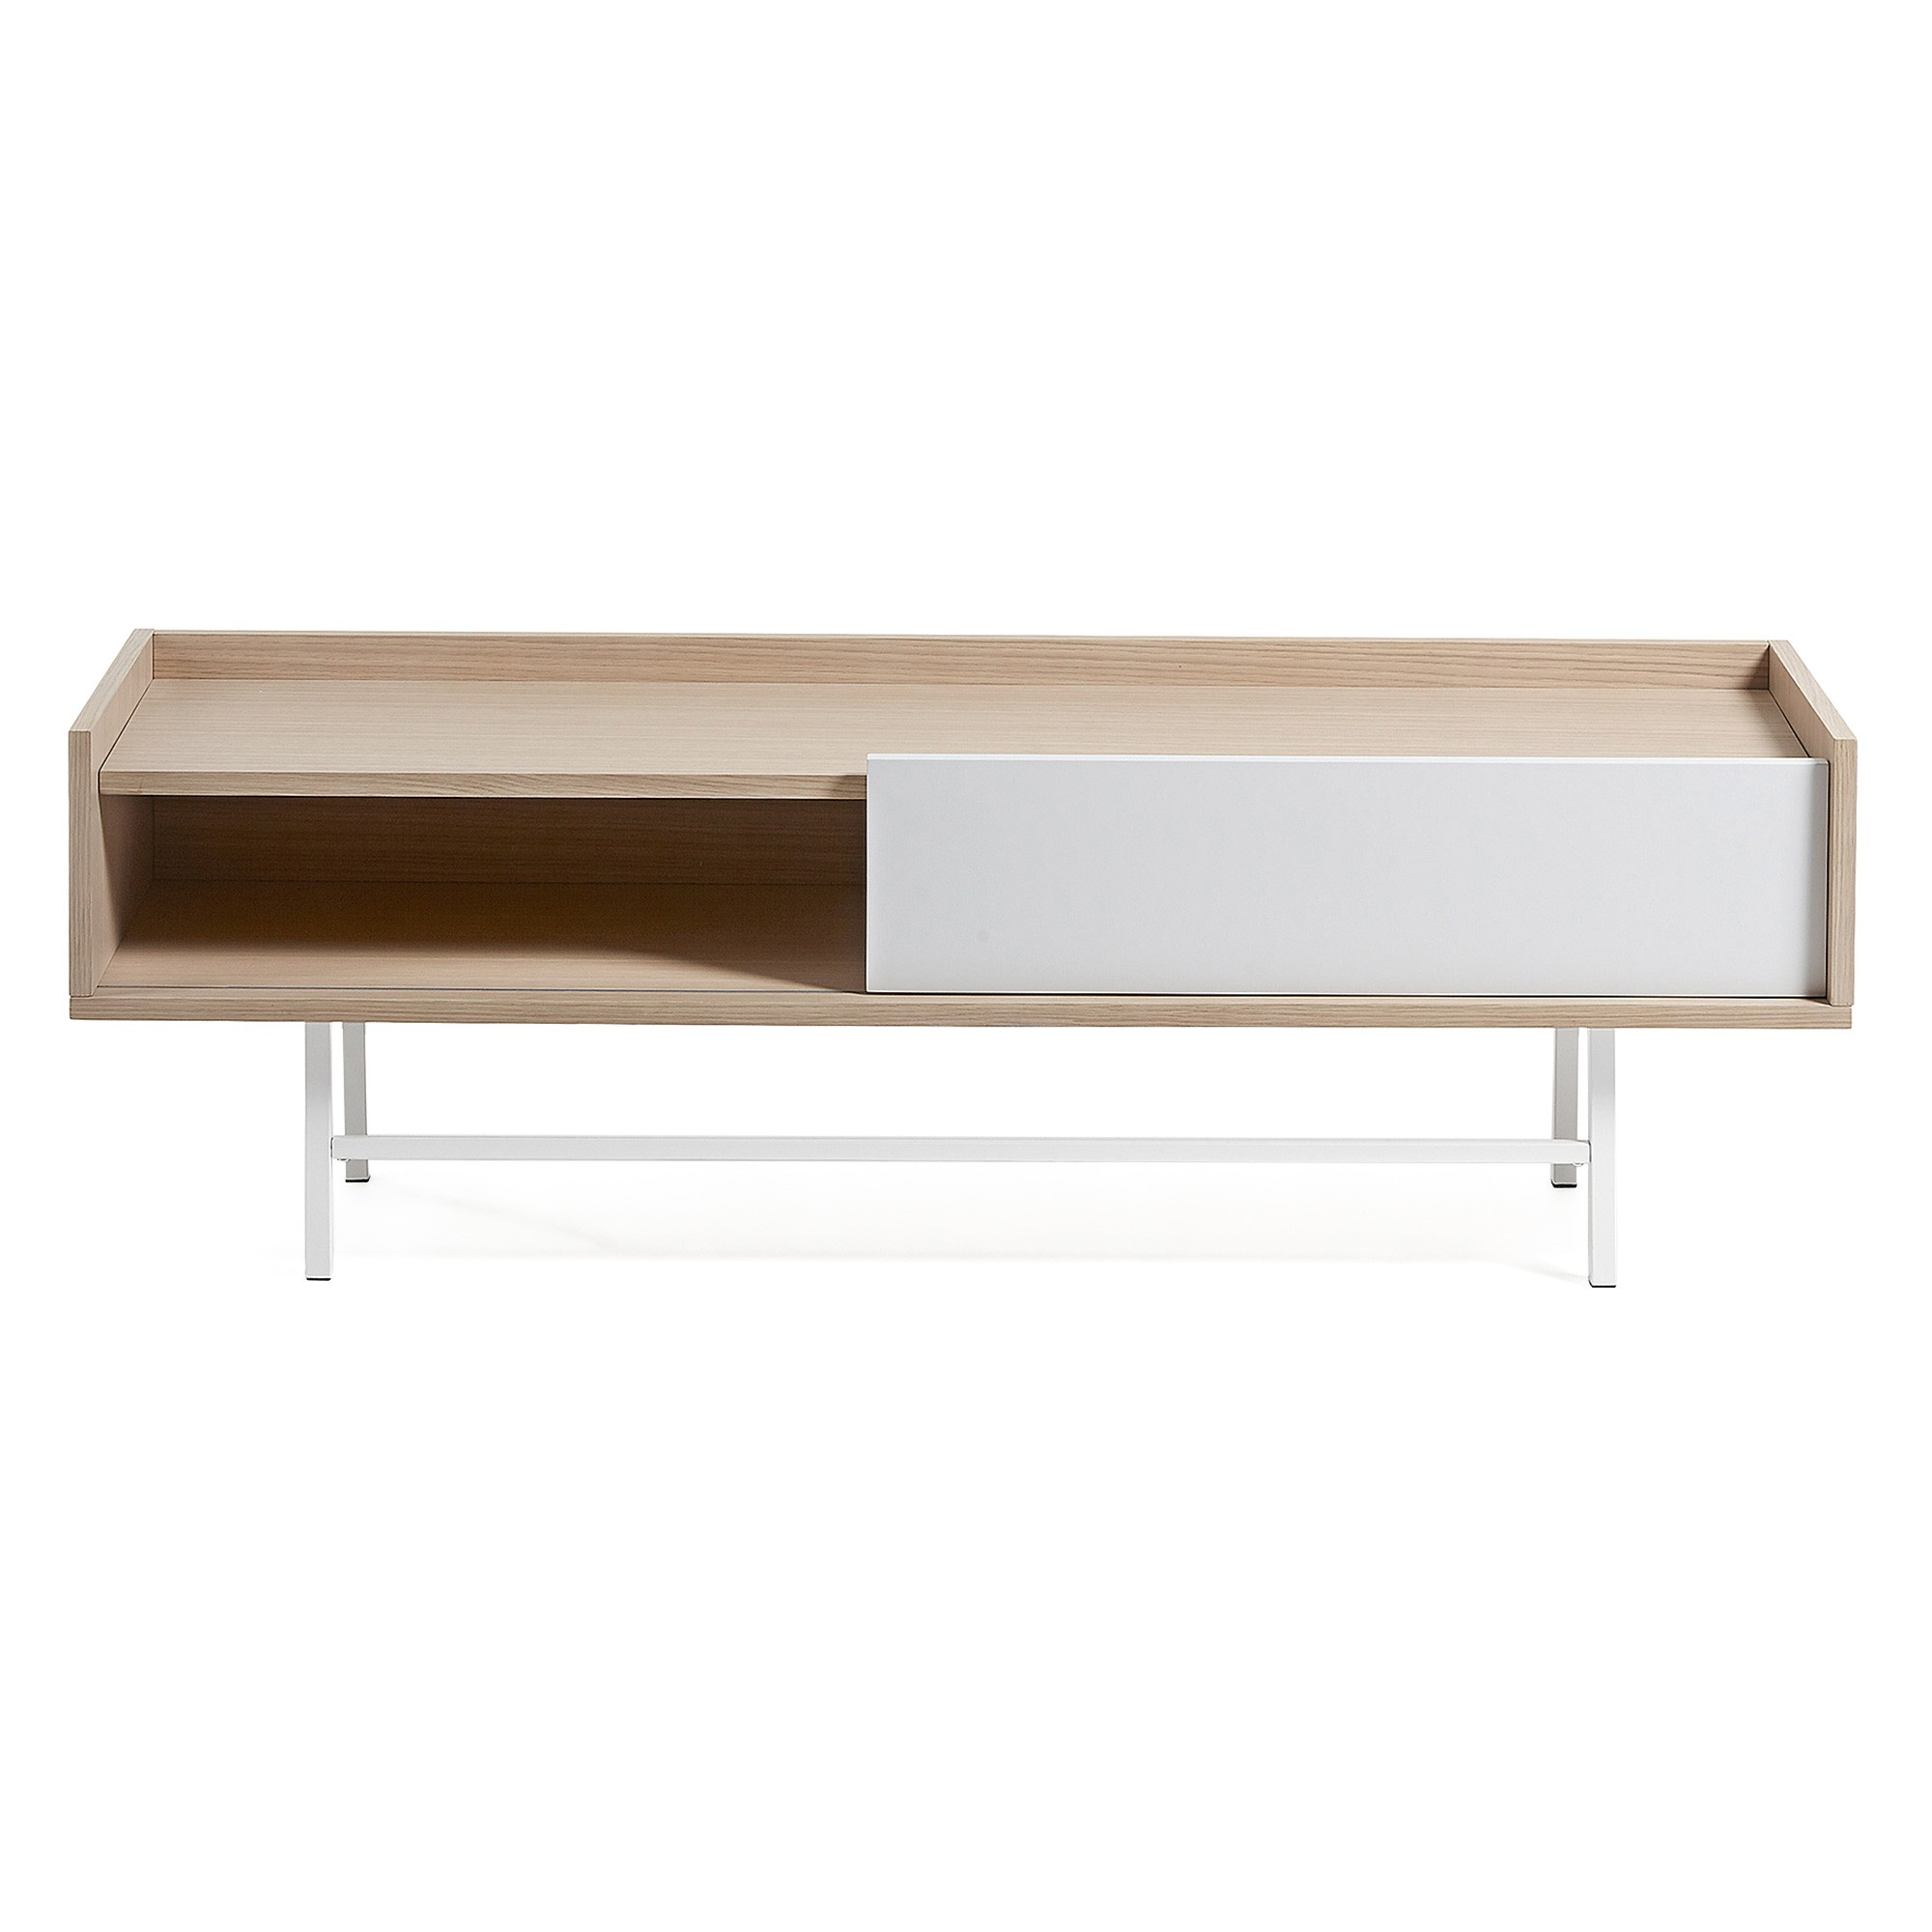 Buxton Sliding Door Lowline TV Unit, 140cm